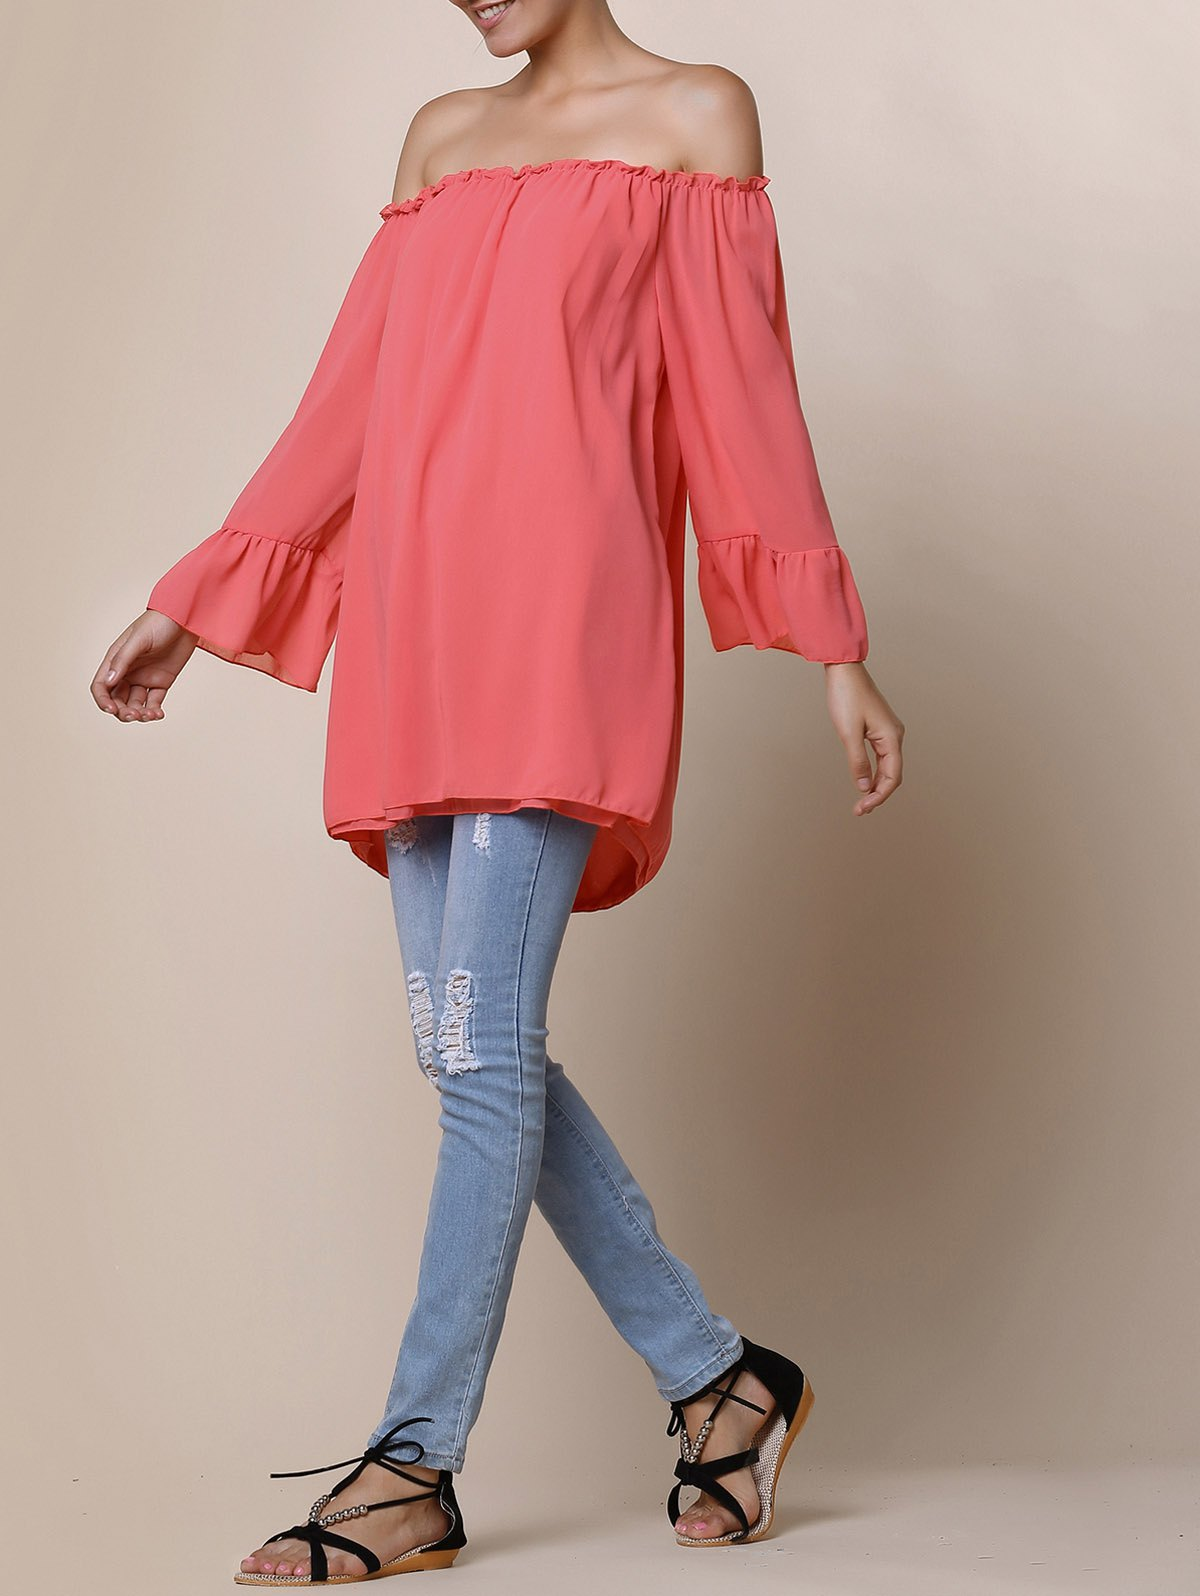 Endearing Off-The-Shoulder Pure Color Ruffled Blouse For Women - ORANGE RED XL